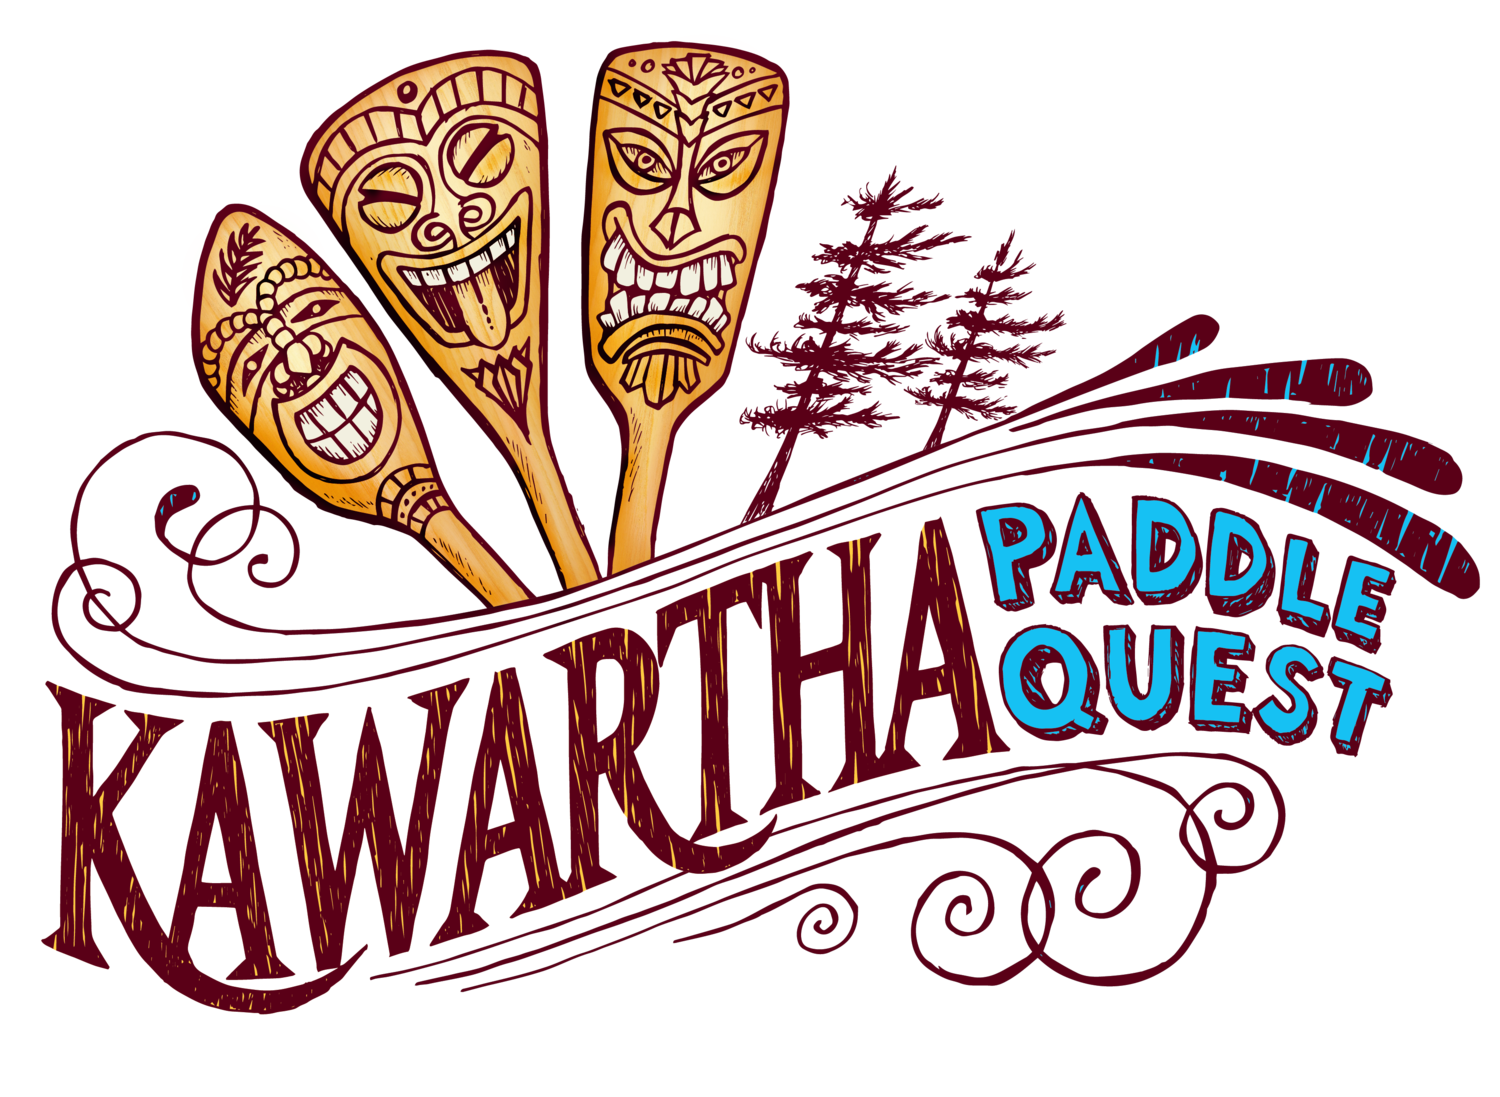 KAWARTHA PADDLE QUEST